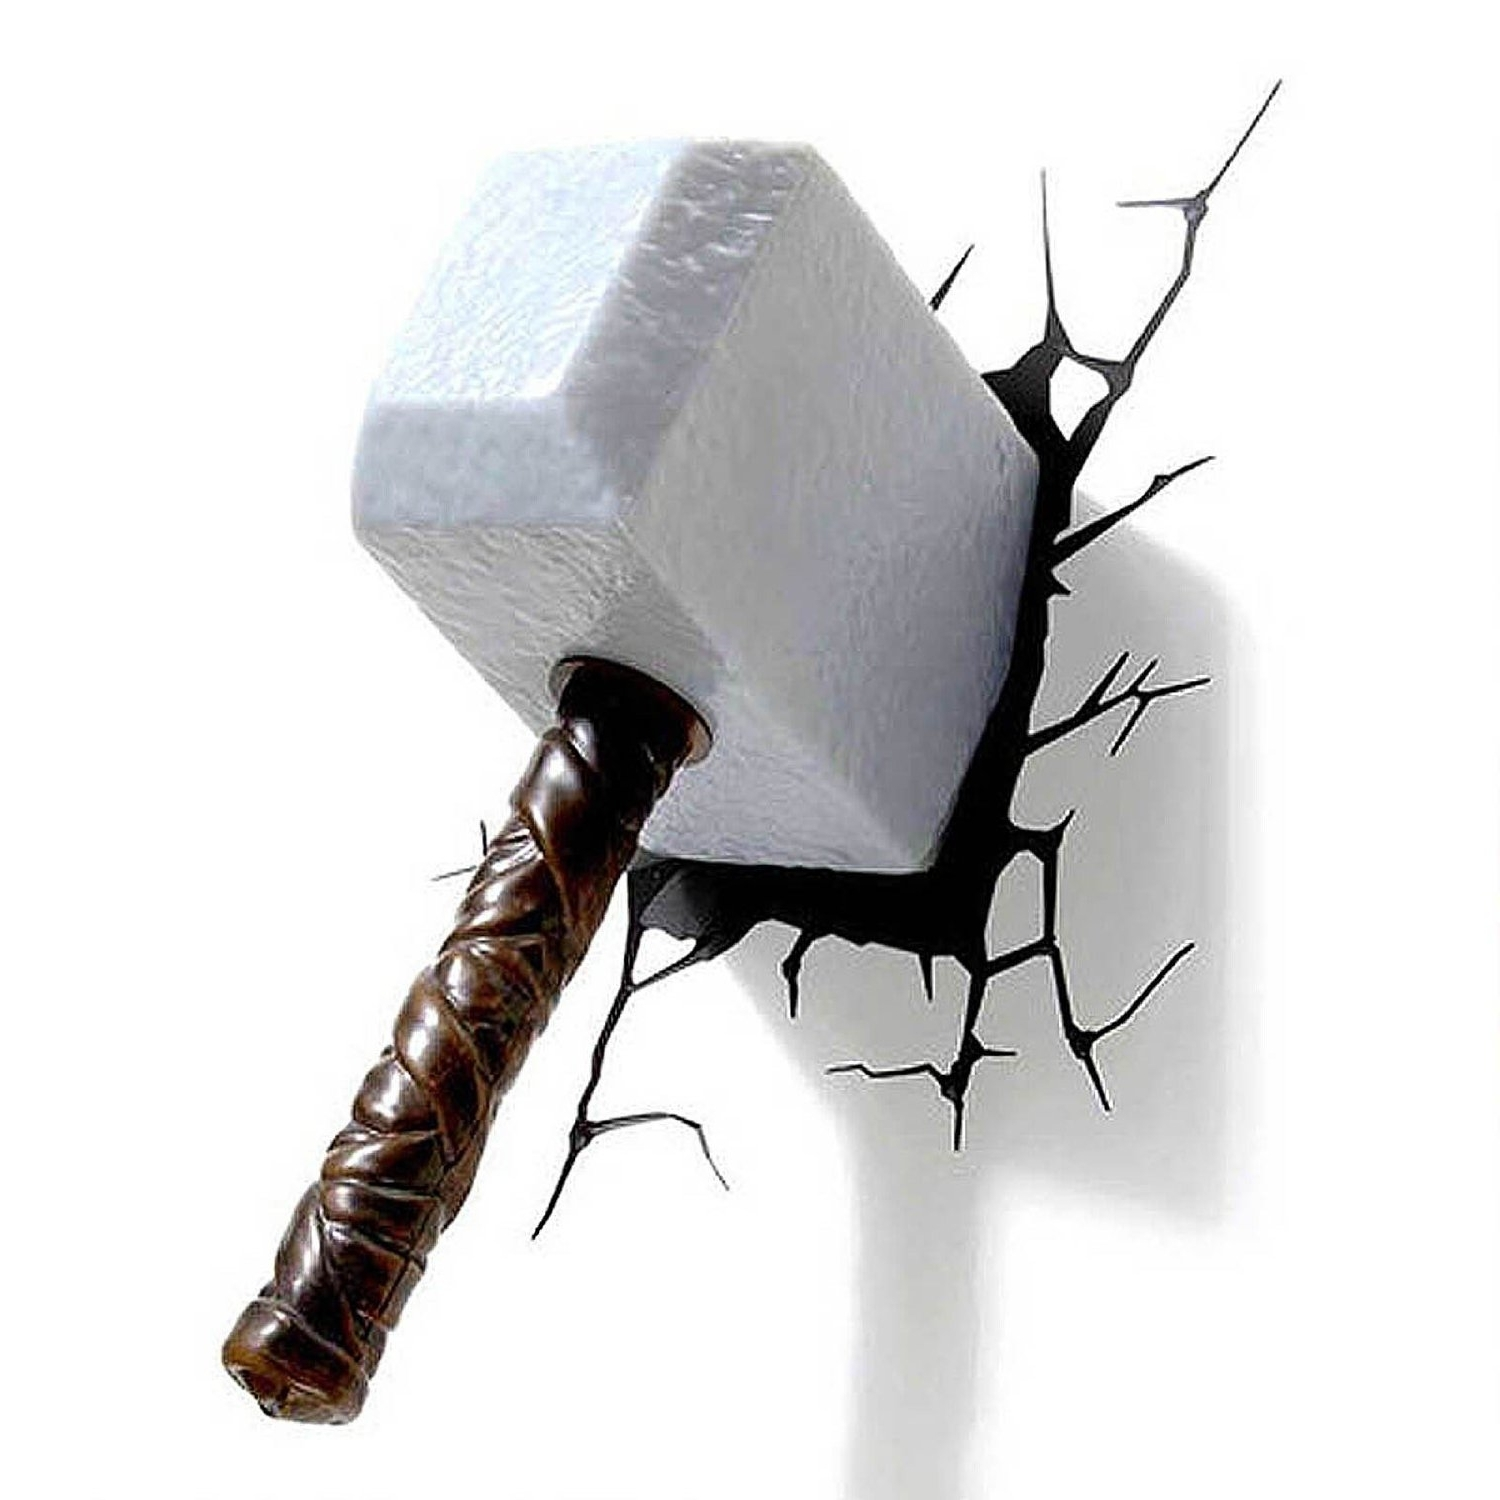 Photos of thor hammer 3d wall art showing 1 of 15 photos most up to date thor mjolnir hammer 3d wall light for sale lolcoolstuff within thor mozeypictures